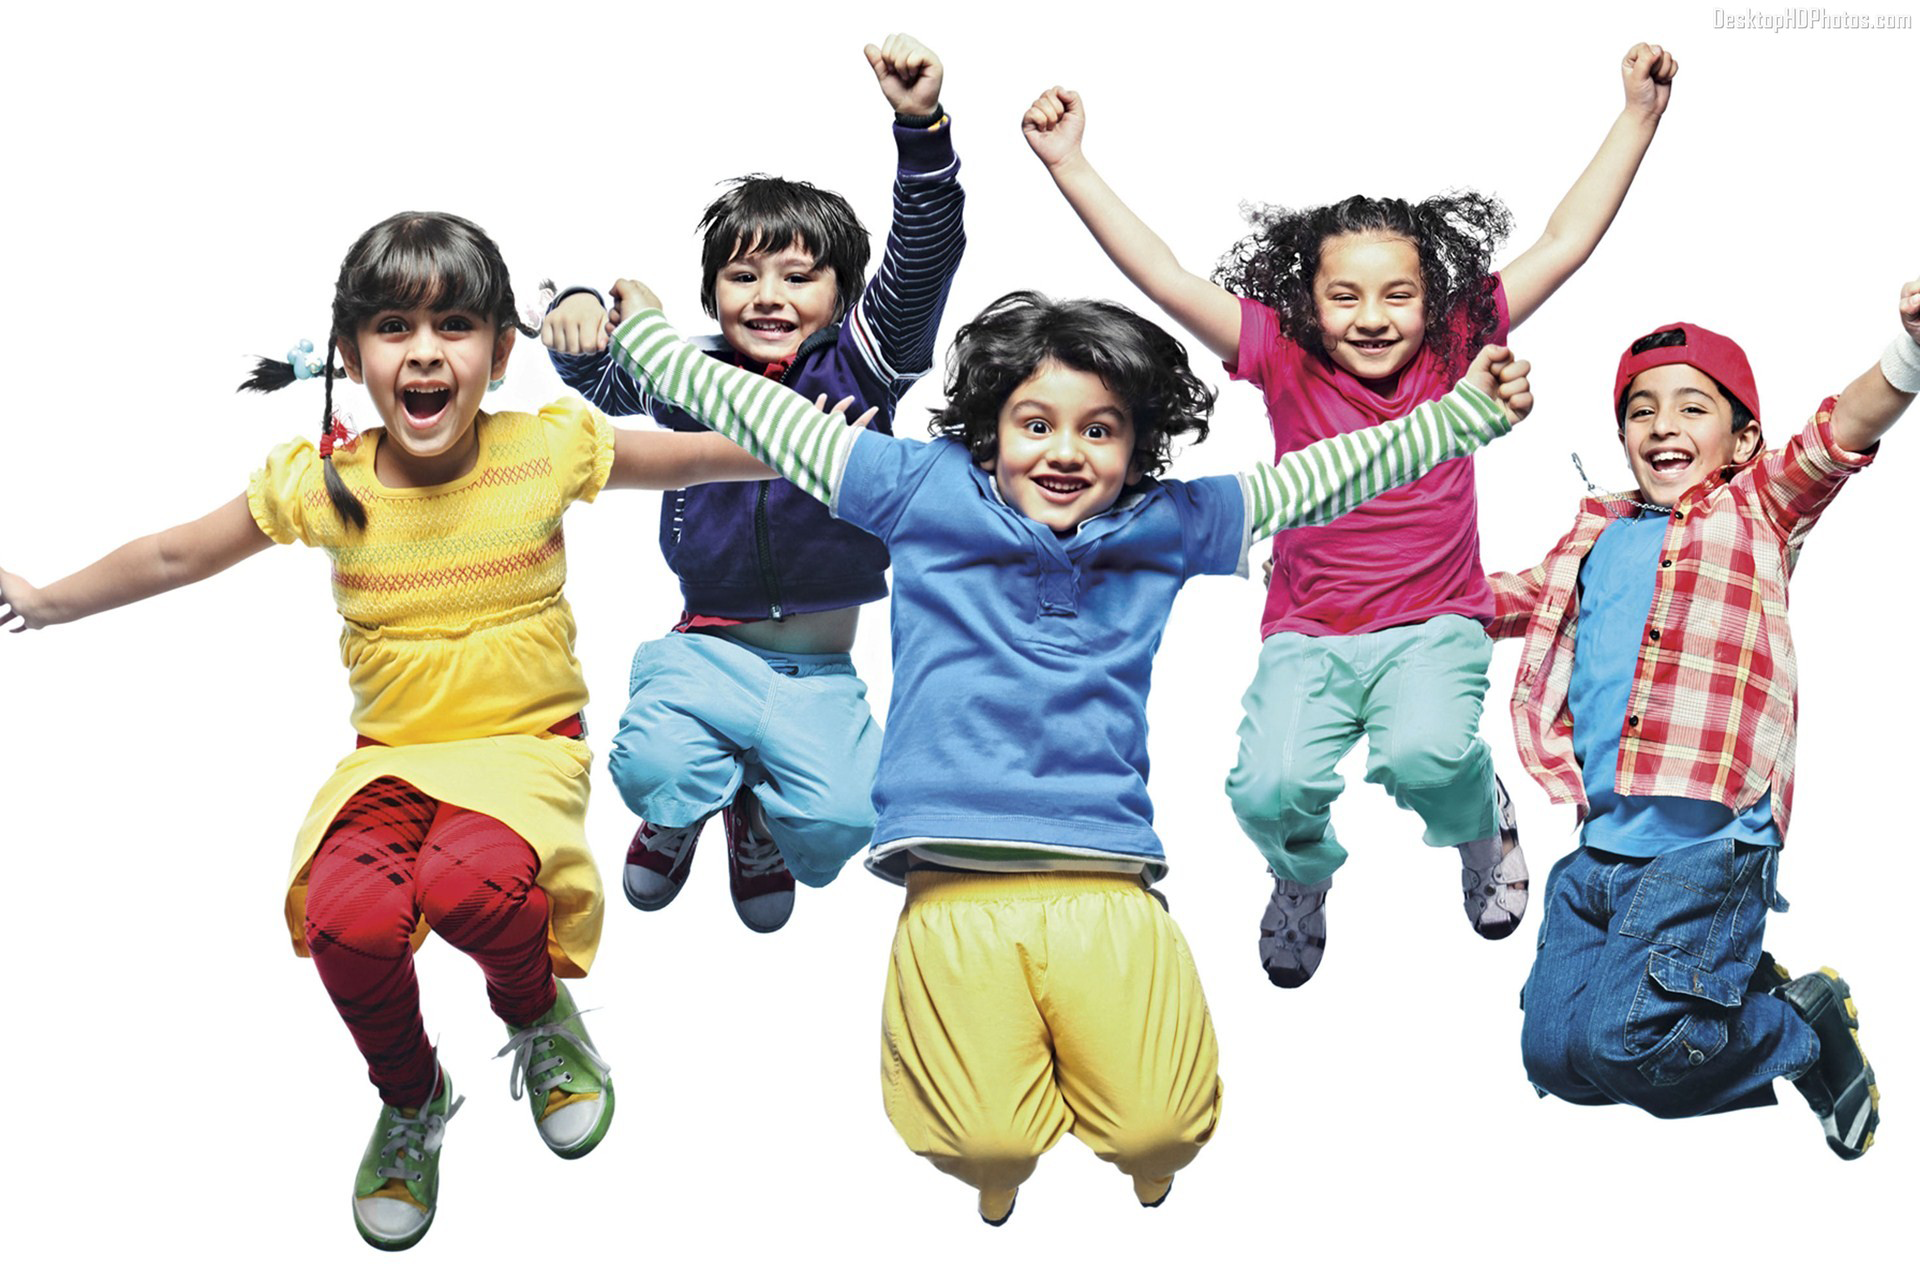 Happy Little Kids Jumping And Dancing Image - PNG Kids Dancing